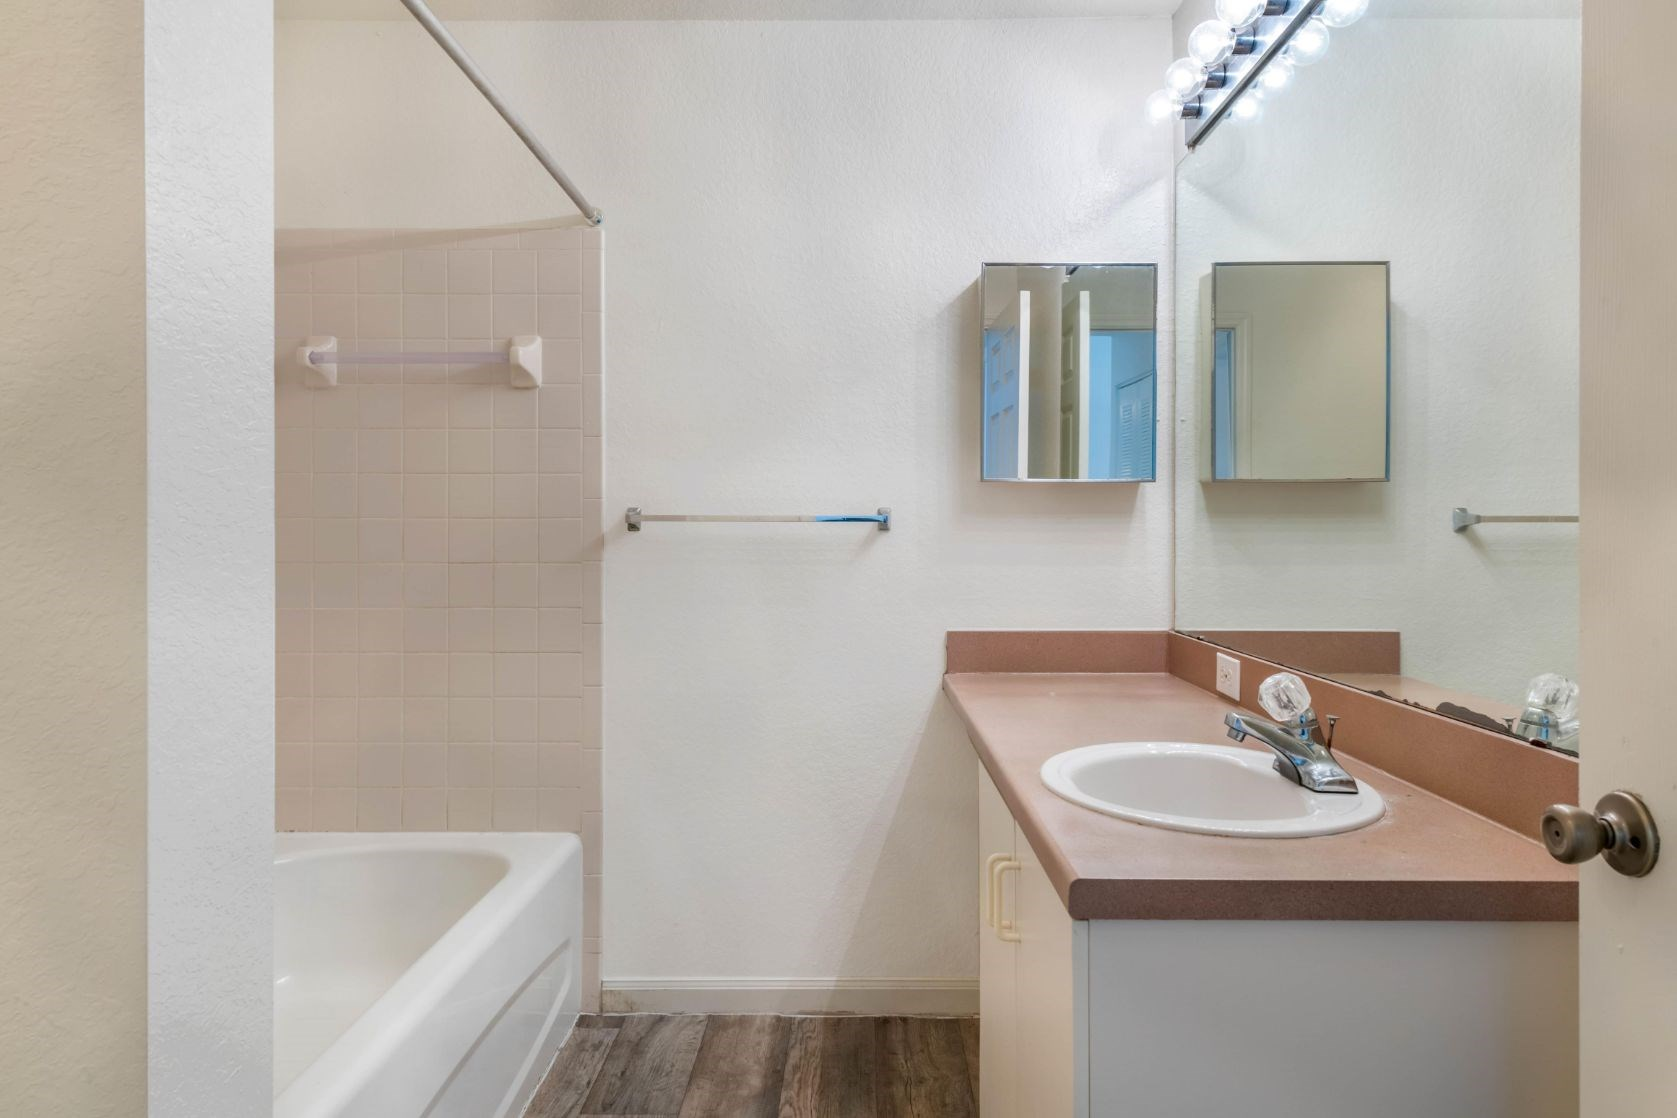 Whispering Woods | Bathroom with Tiled Shower & Vanity